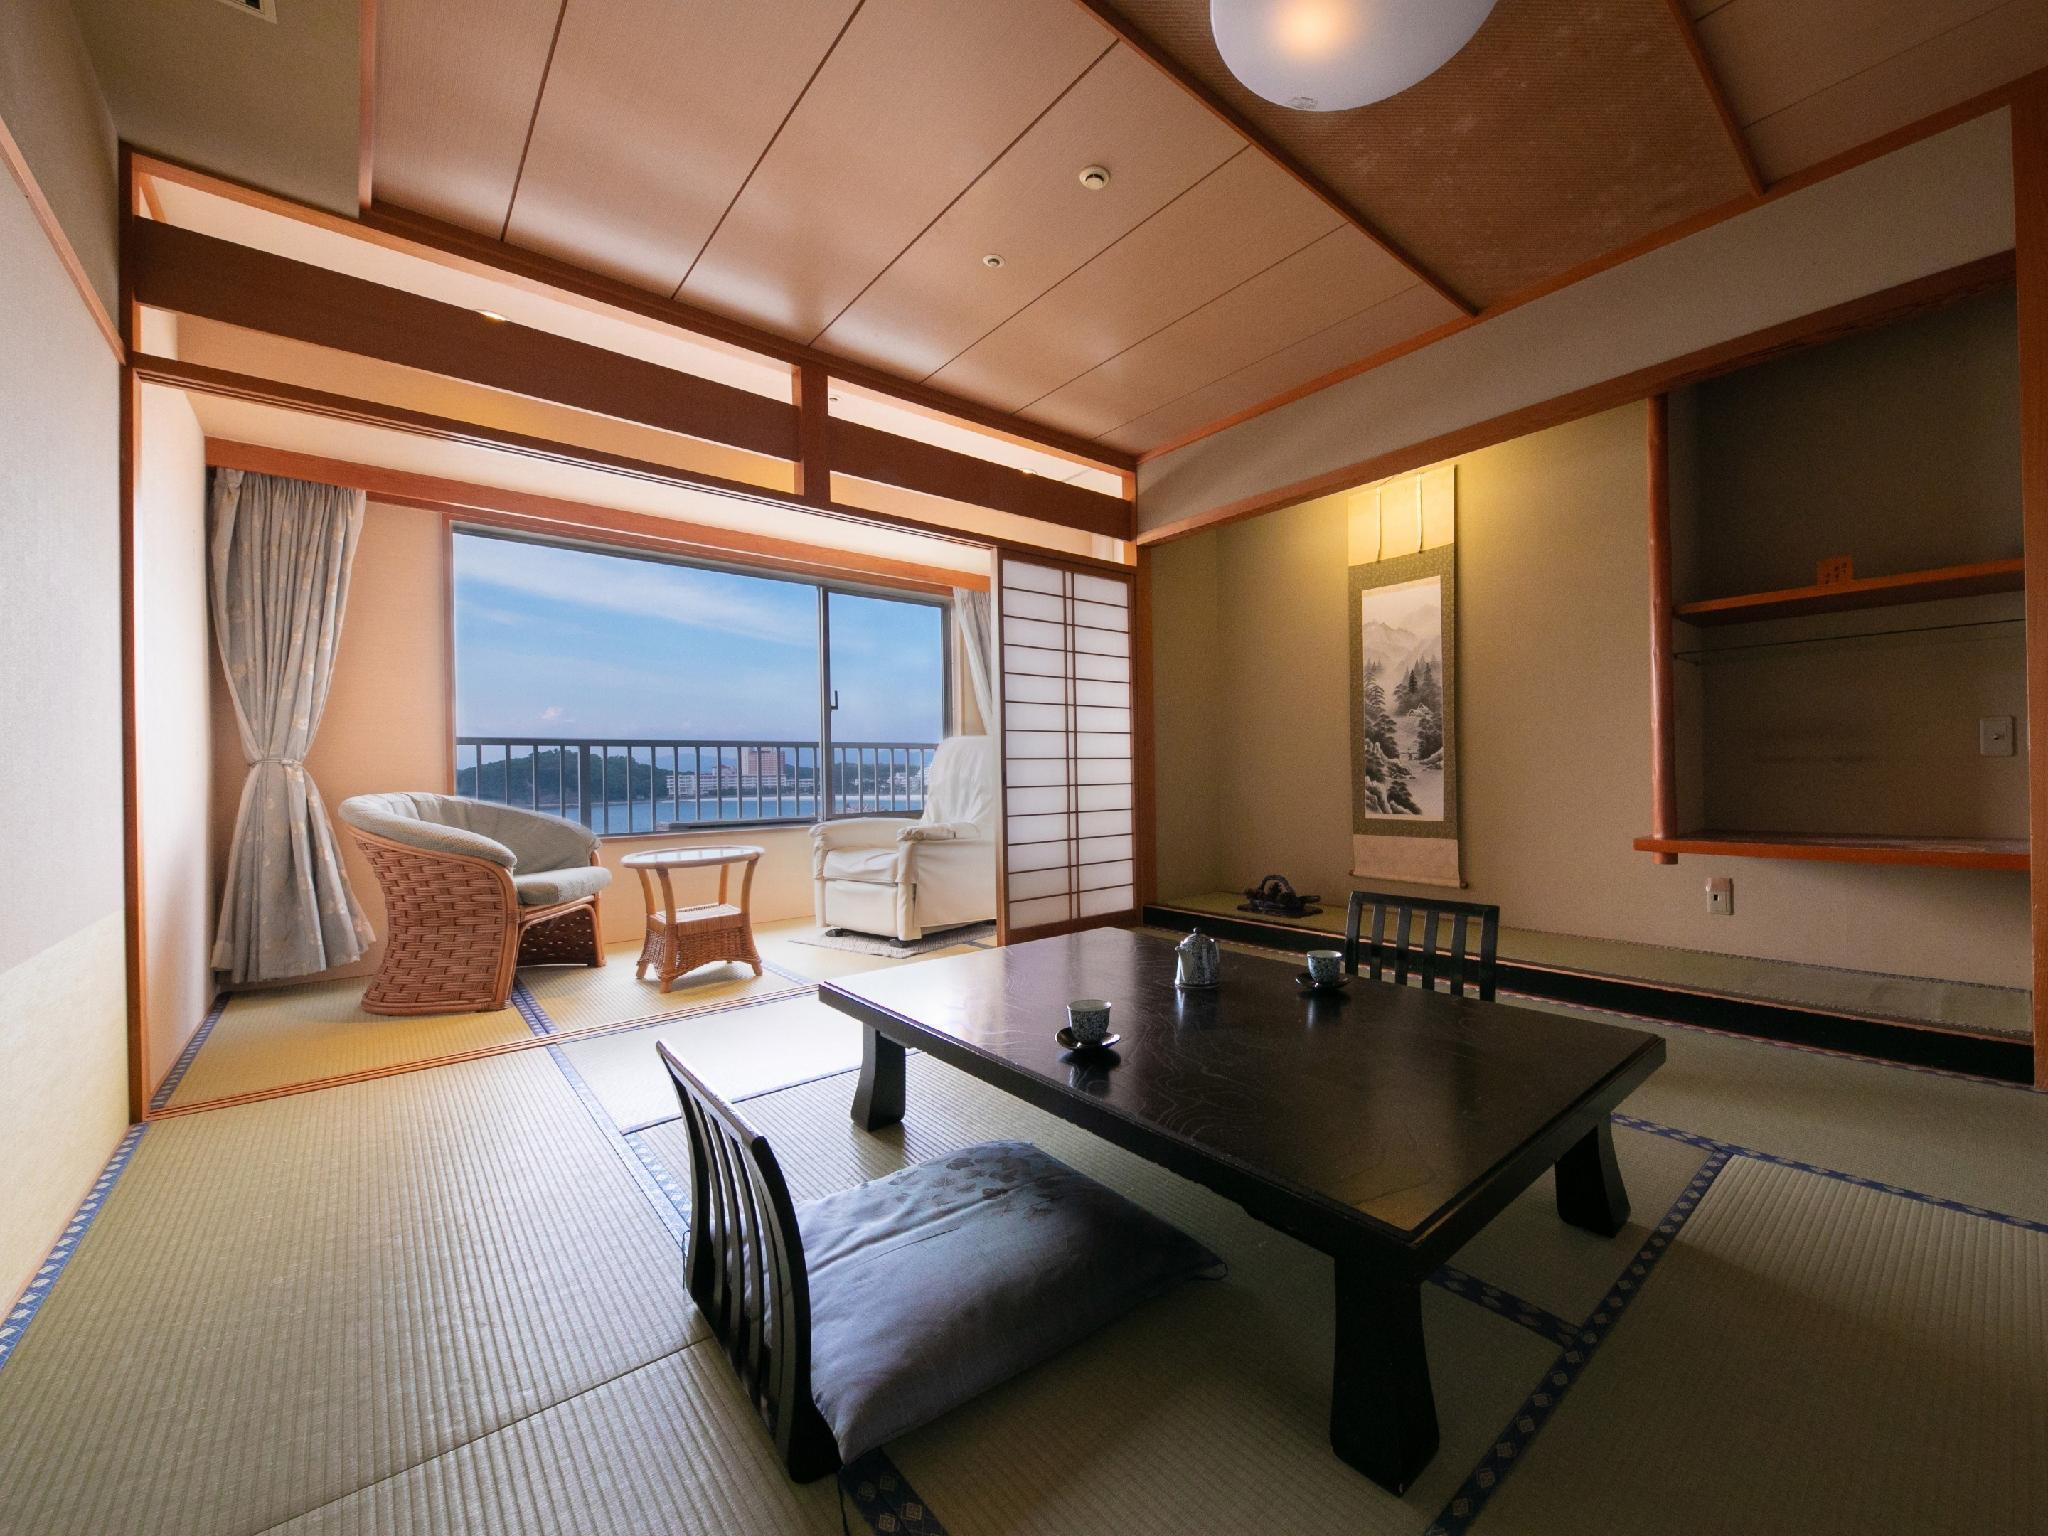 和式房+按摩椅 (Japanese-style Room with Massage Chair)